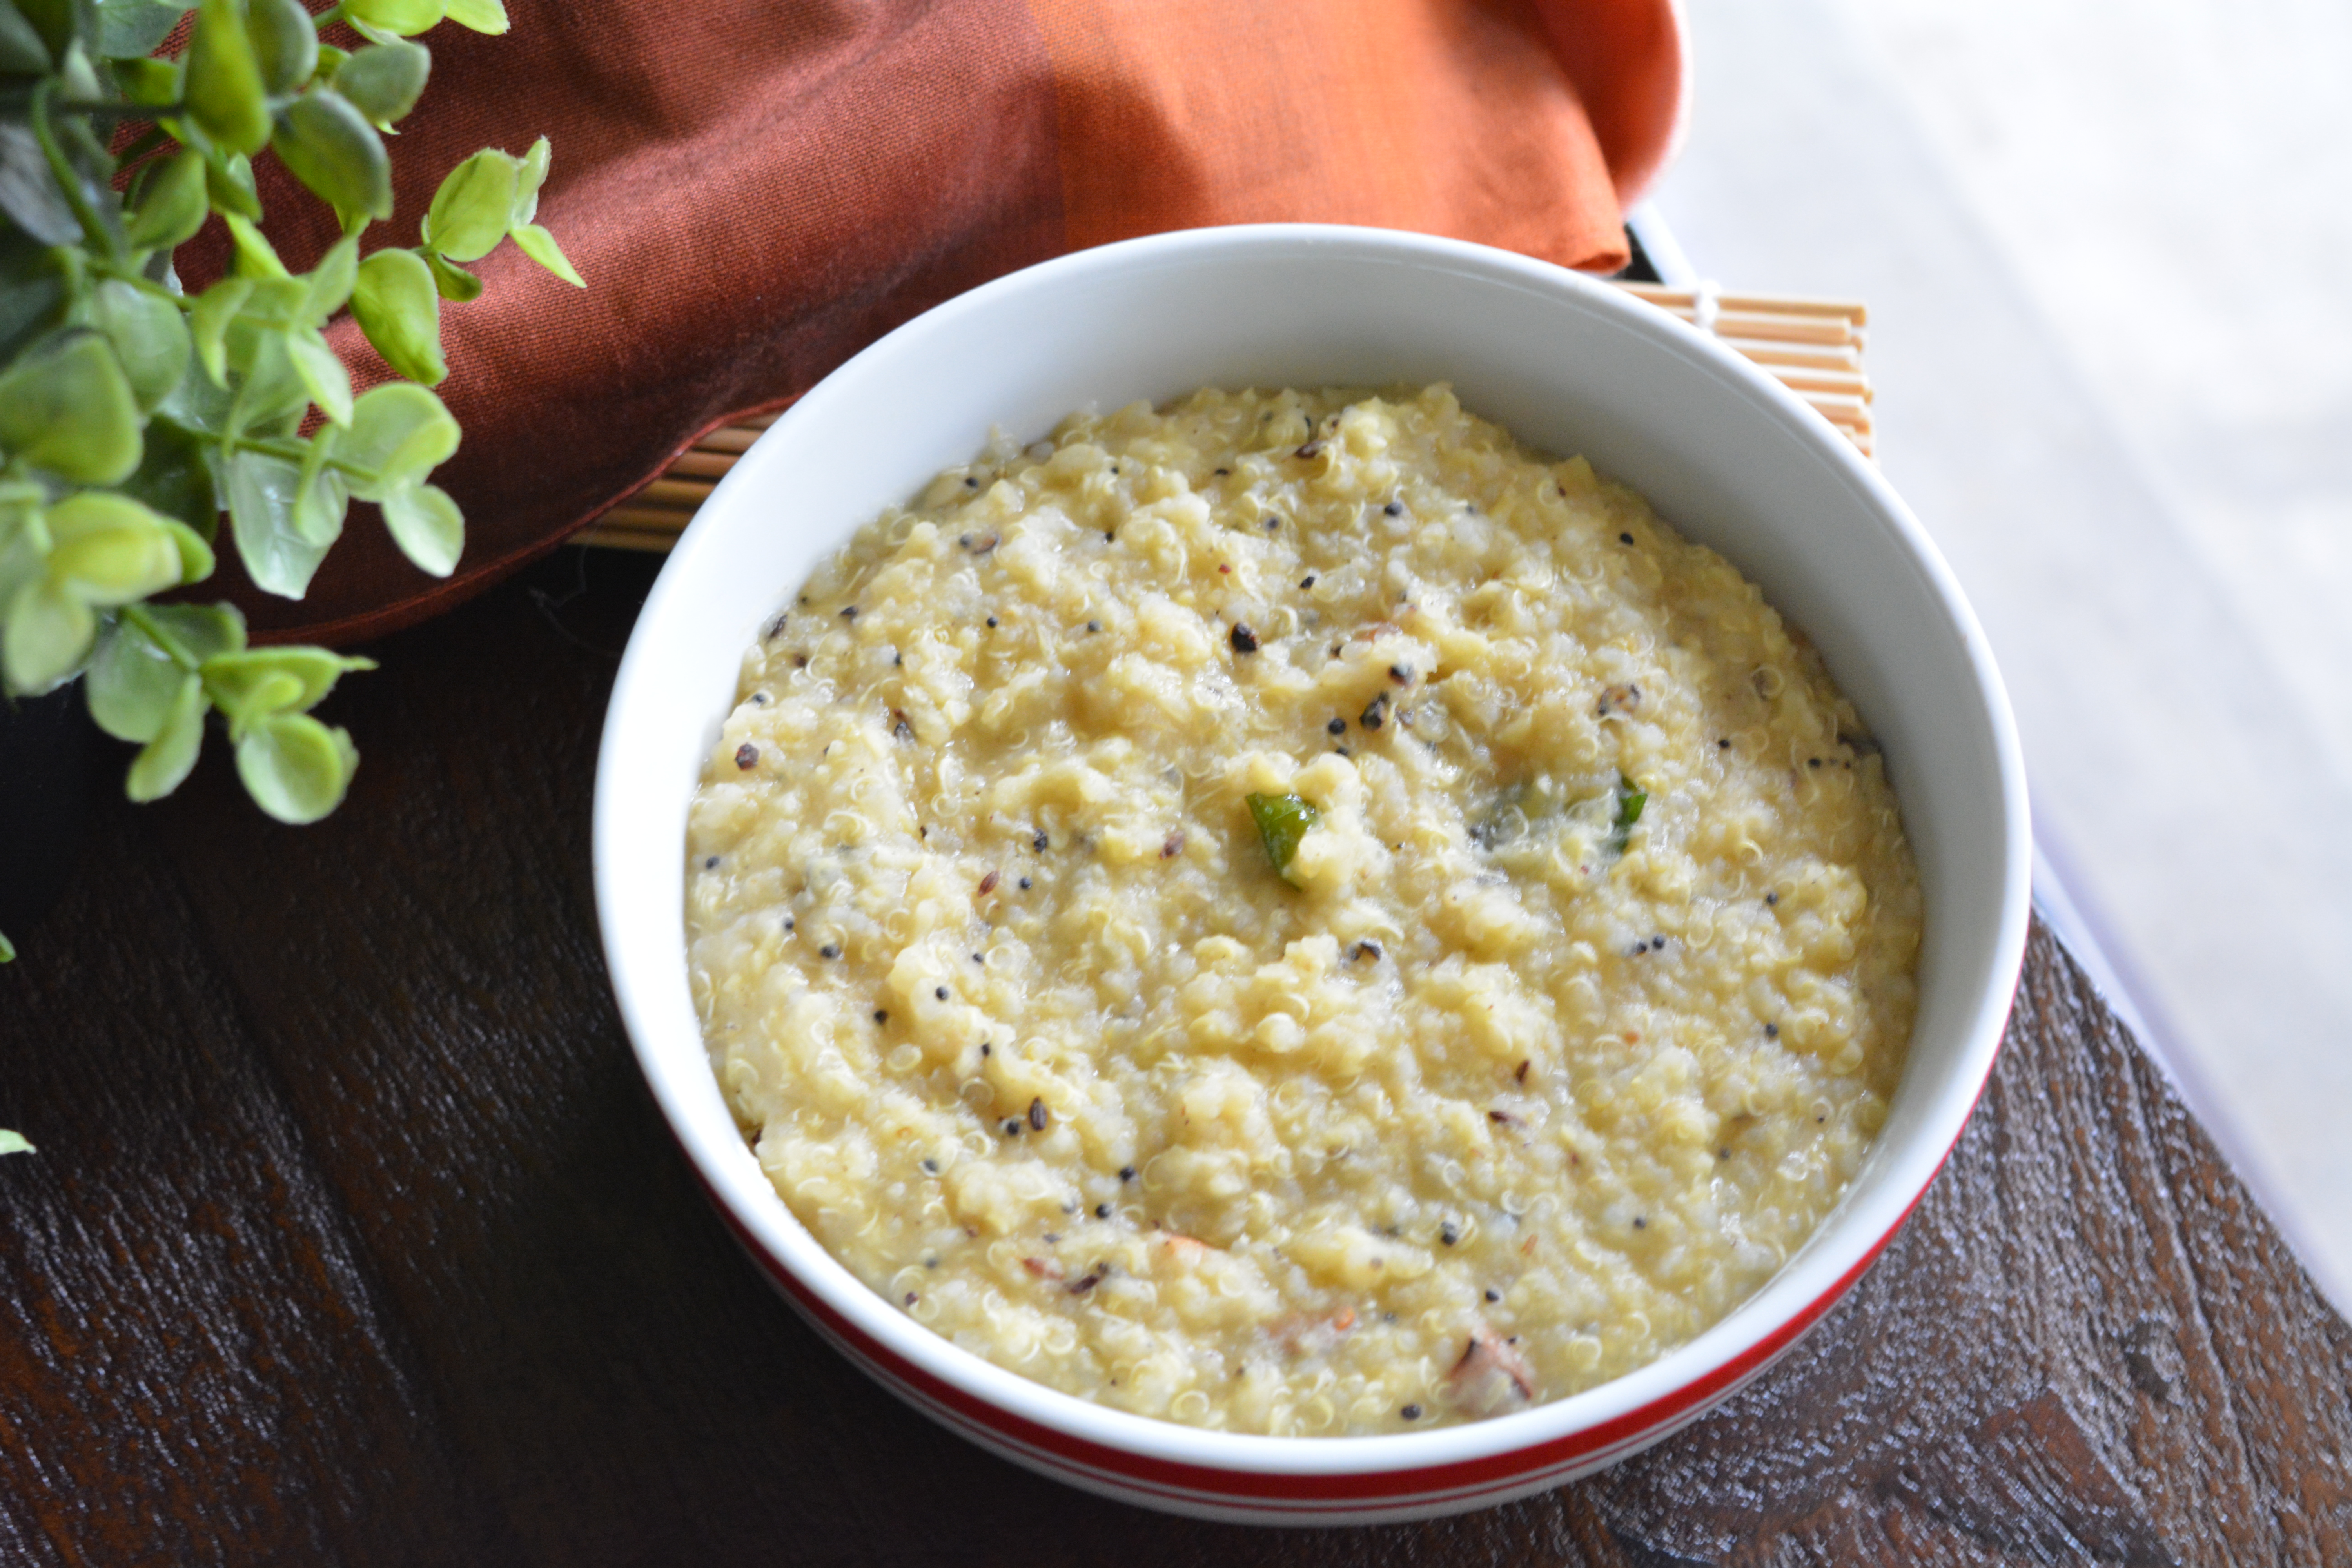 Quinoa pongal it is also not a vegan breakfast if you have it in india loaded with ghee sometimes even milk added to get a better consistency if you are vegan forumfinder Images